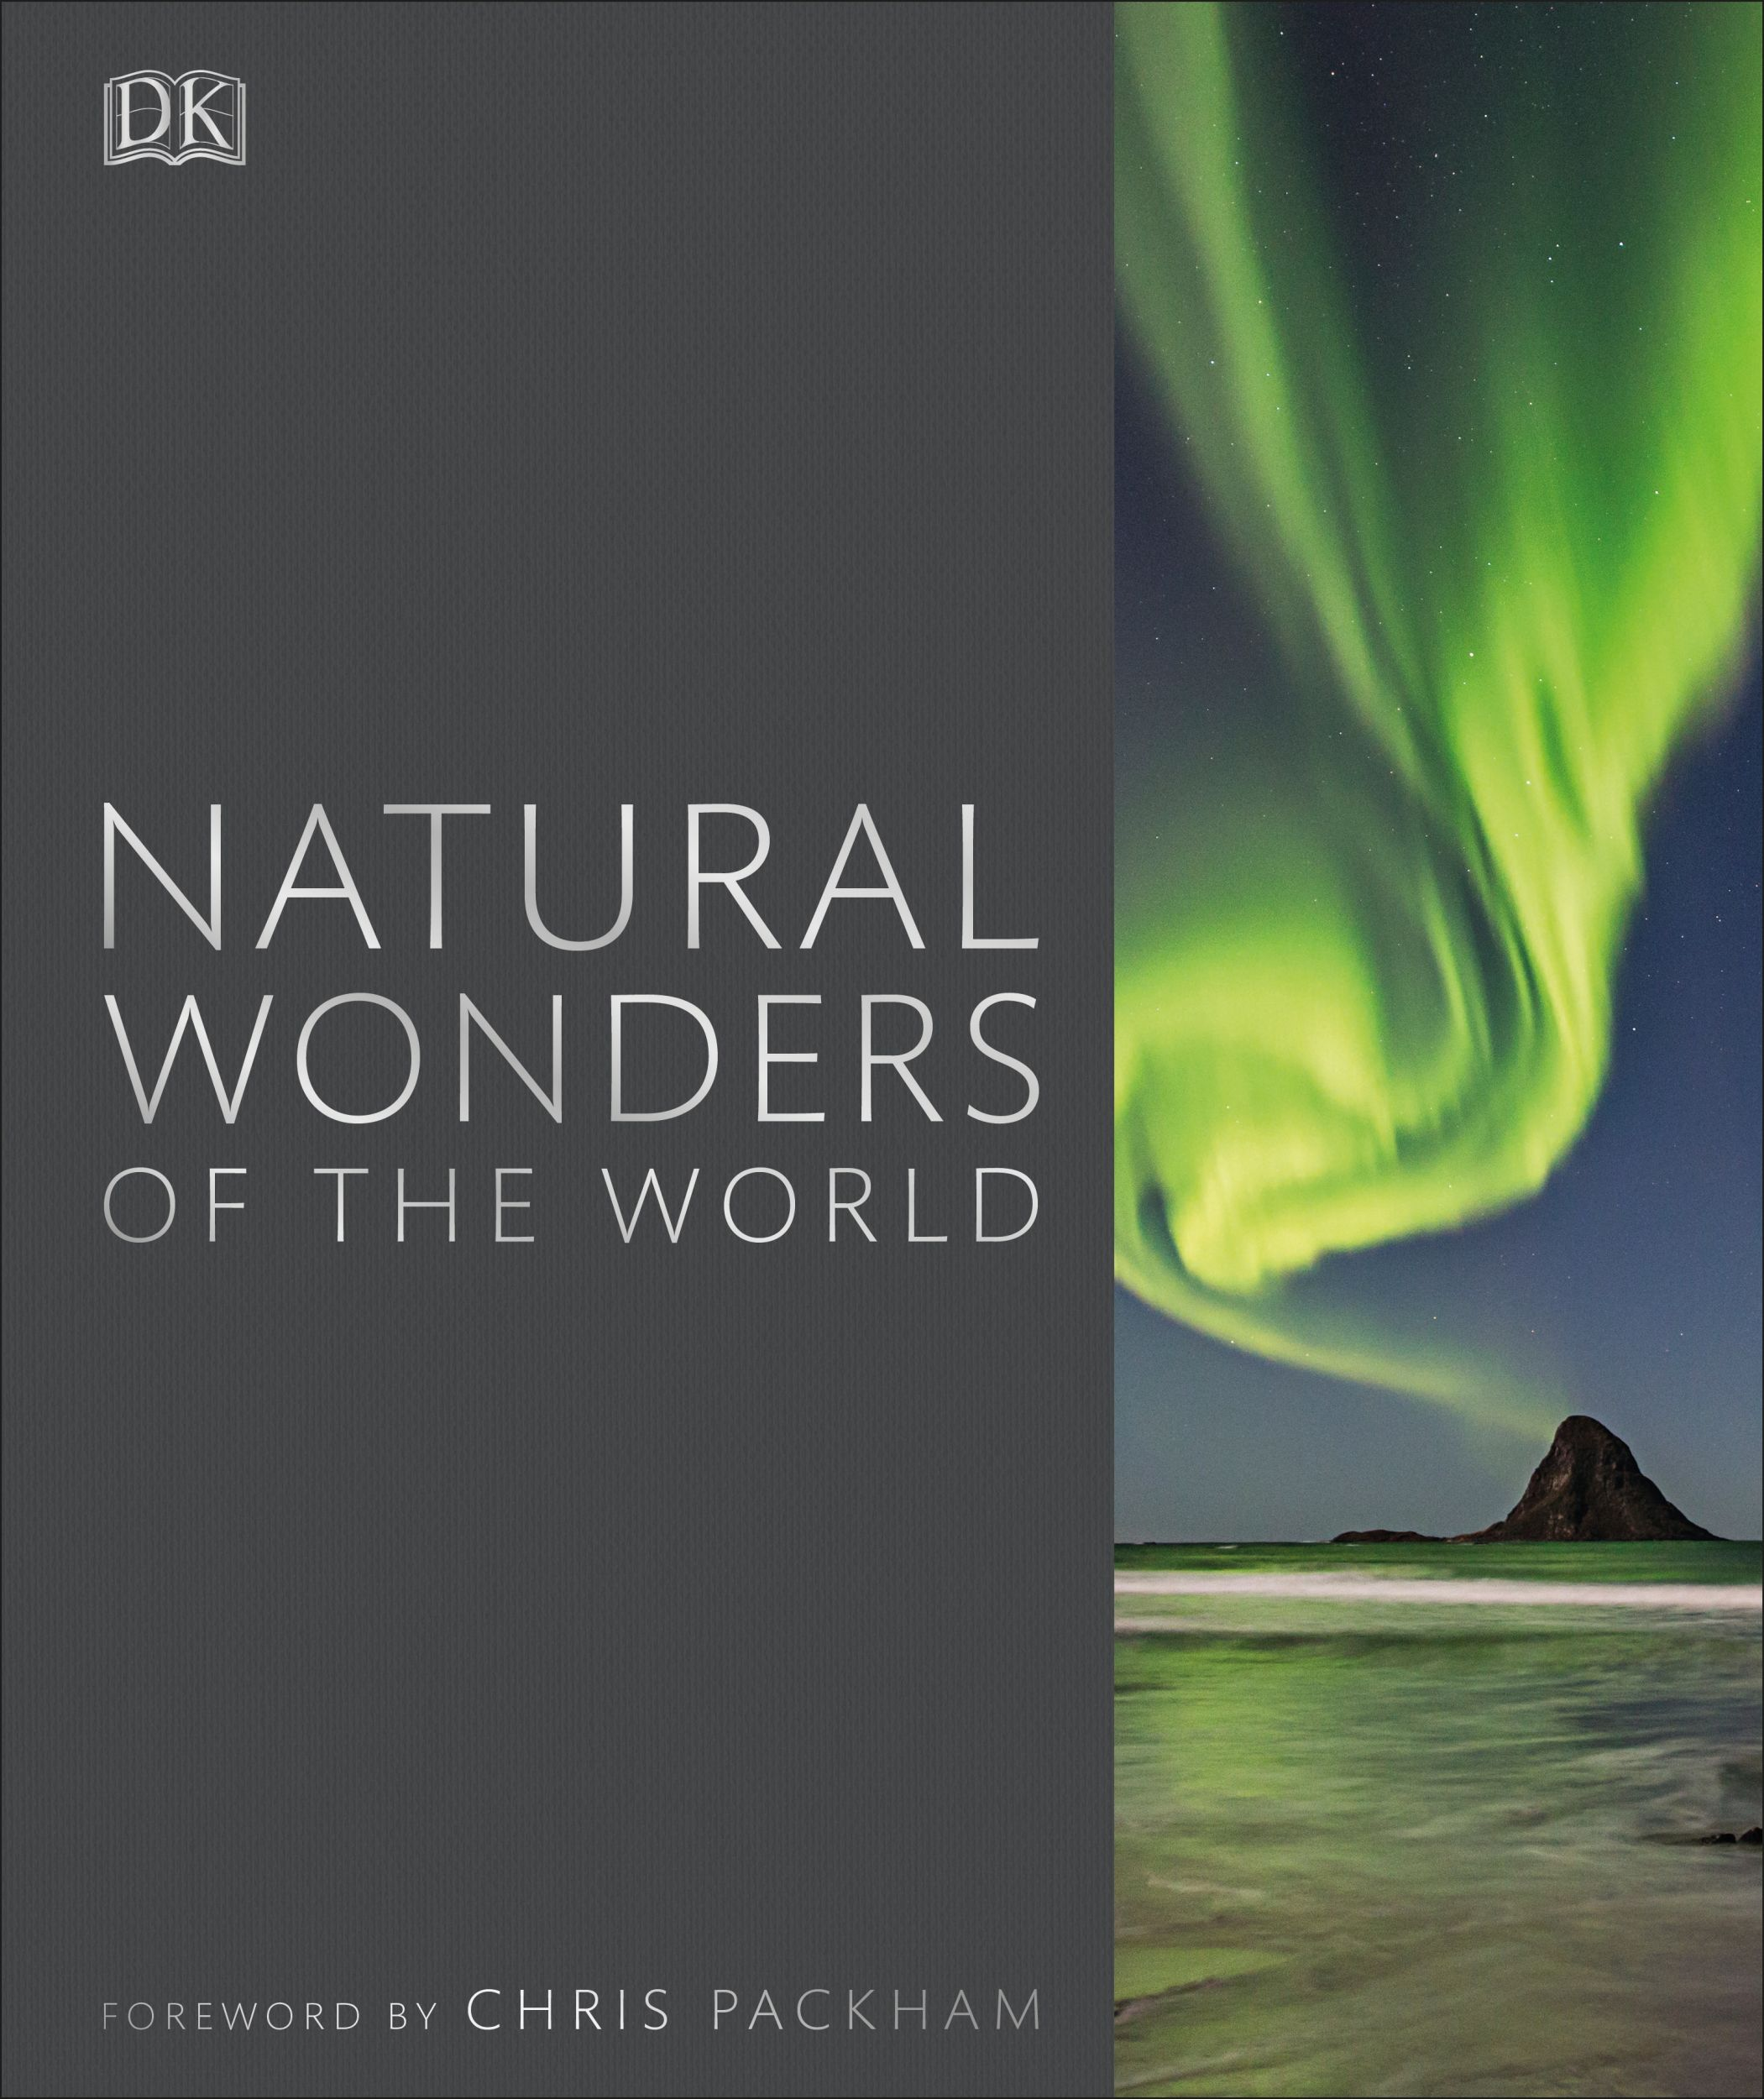 Natural Wonders Of The World (DK/PA)